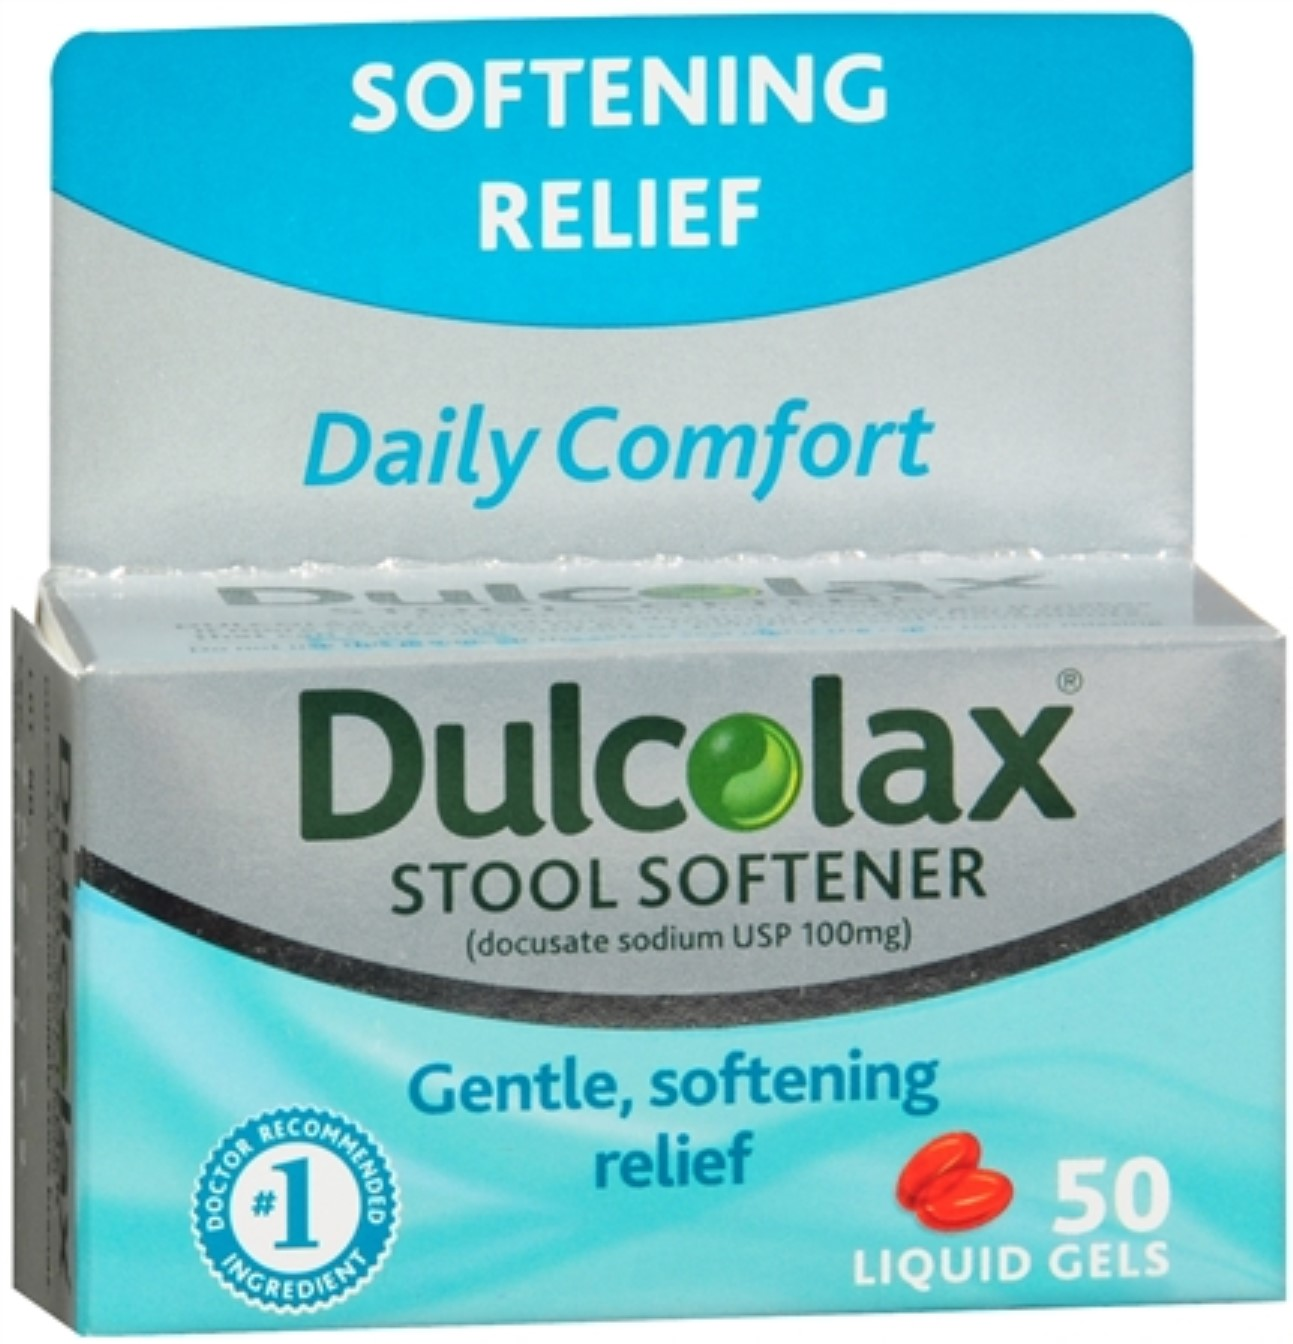 Dulcolax Stool Softener Liquid Gels 50 Liquid Gels (Pack of 3)